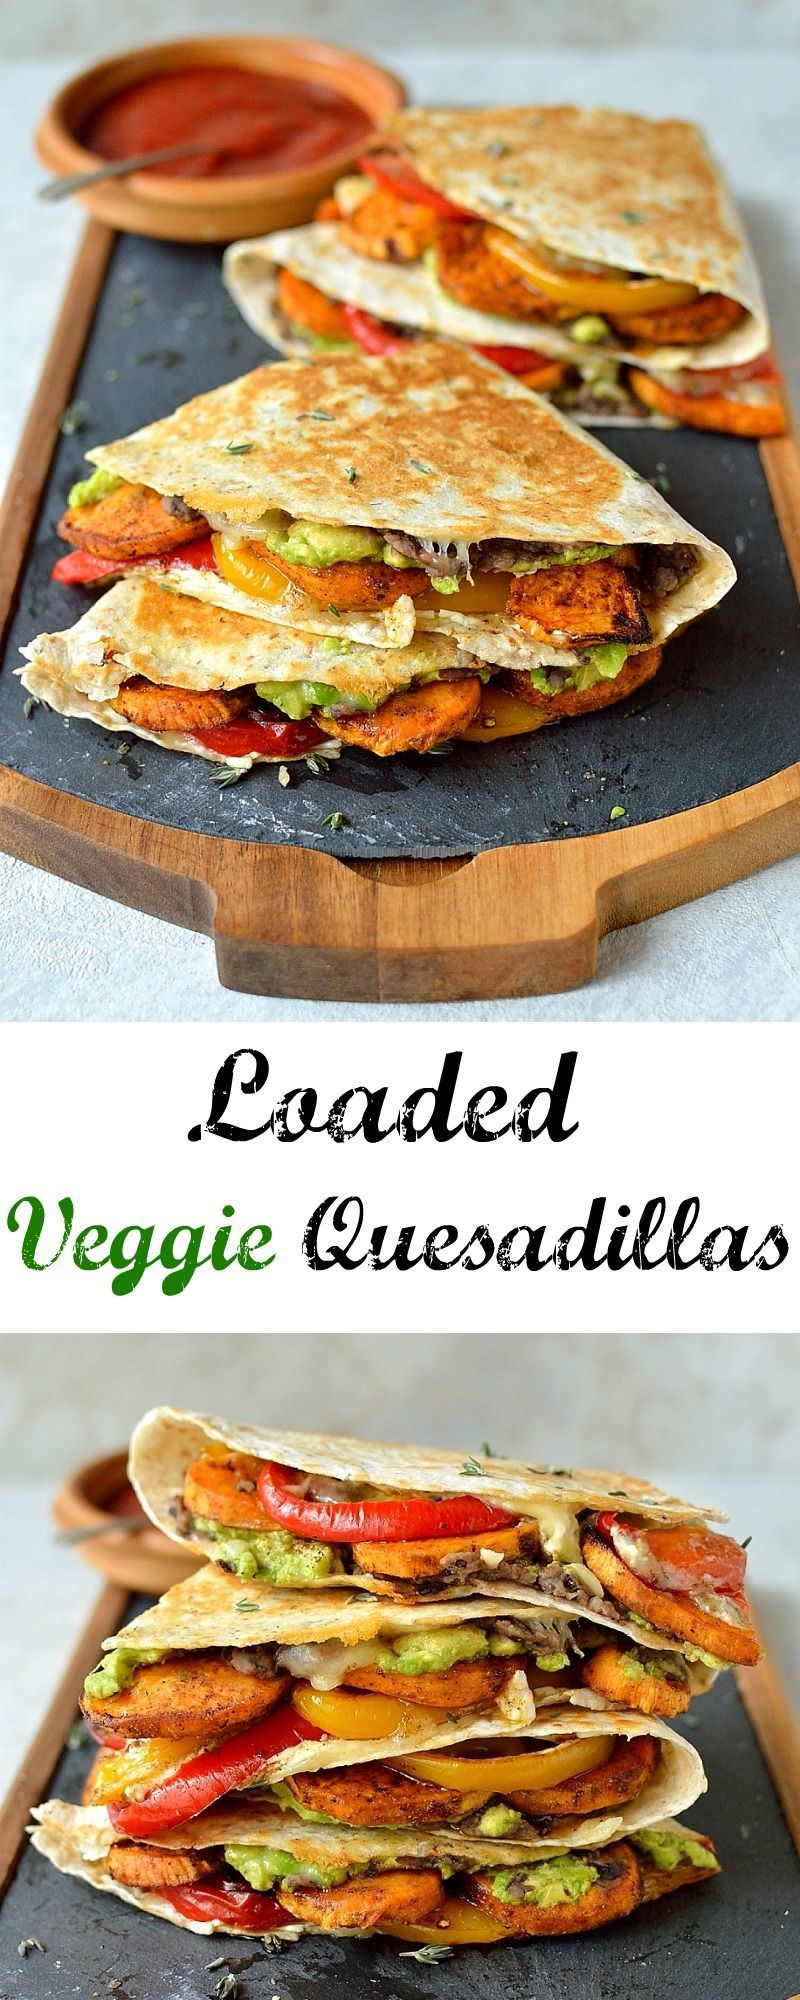 Loaded veggie quesadillas delicious filling healthy quesadillas testosterone boosting foods for men over burn fat lose weight how to easy bone broth recipe fat burning fat burning man abel james collagen forumfinder Gallery